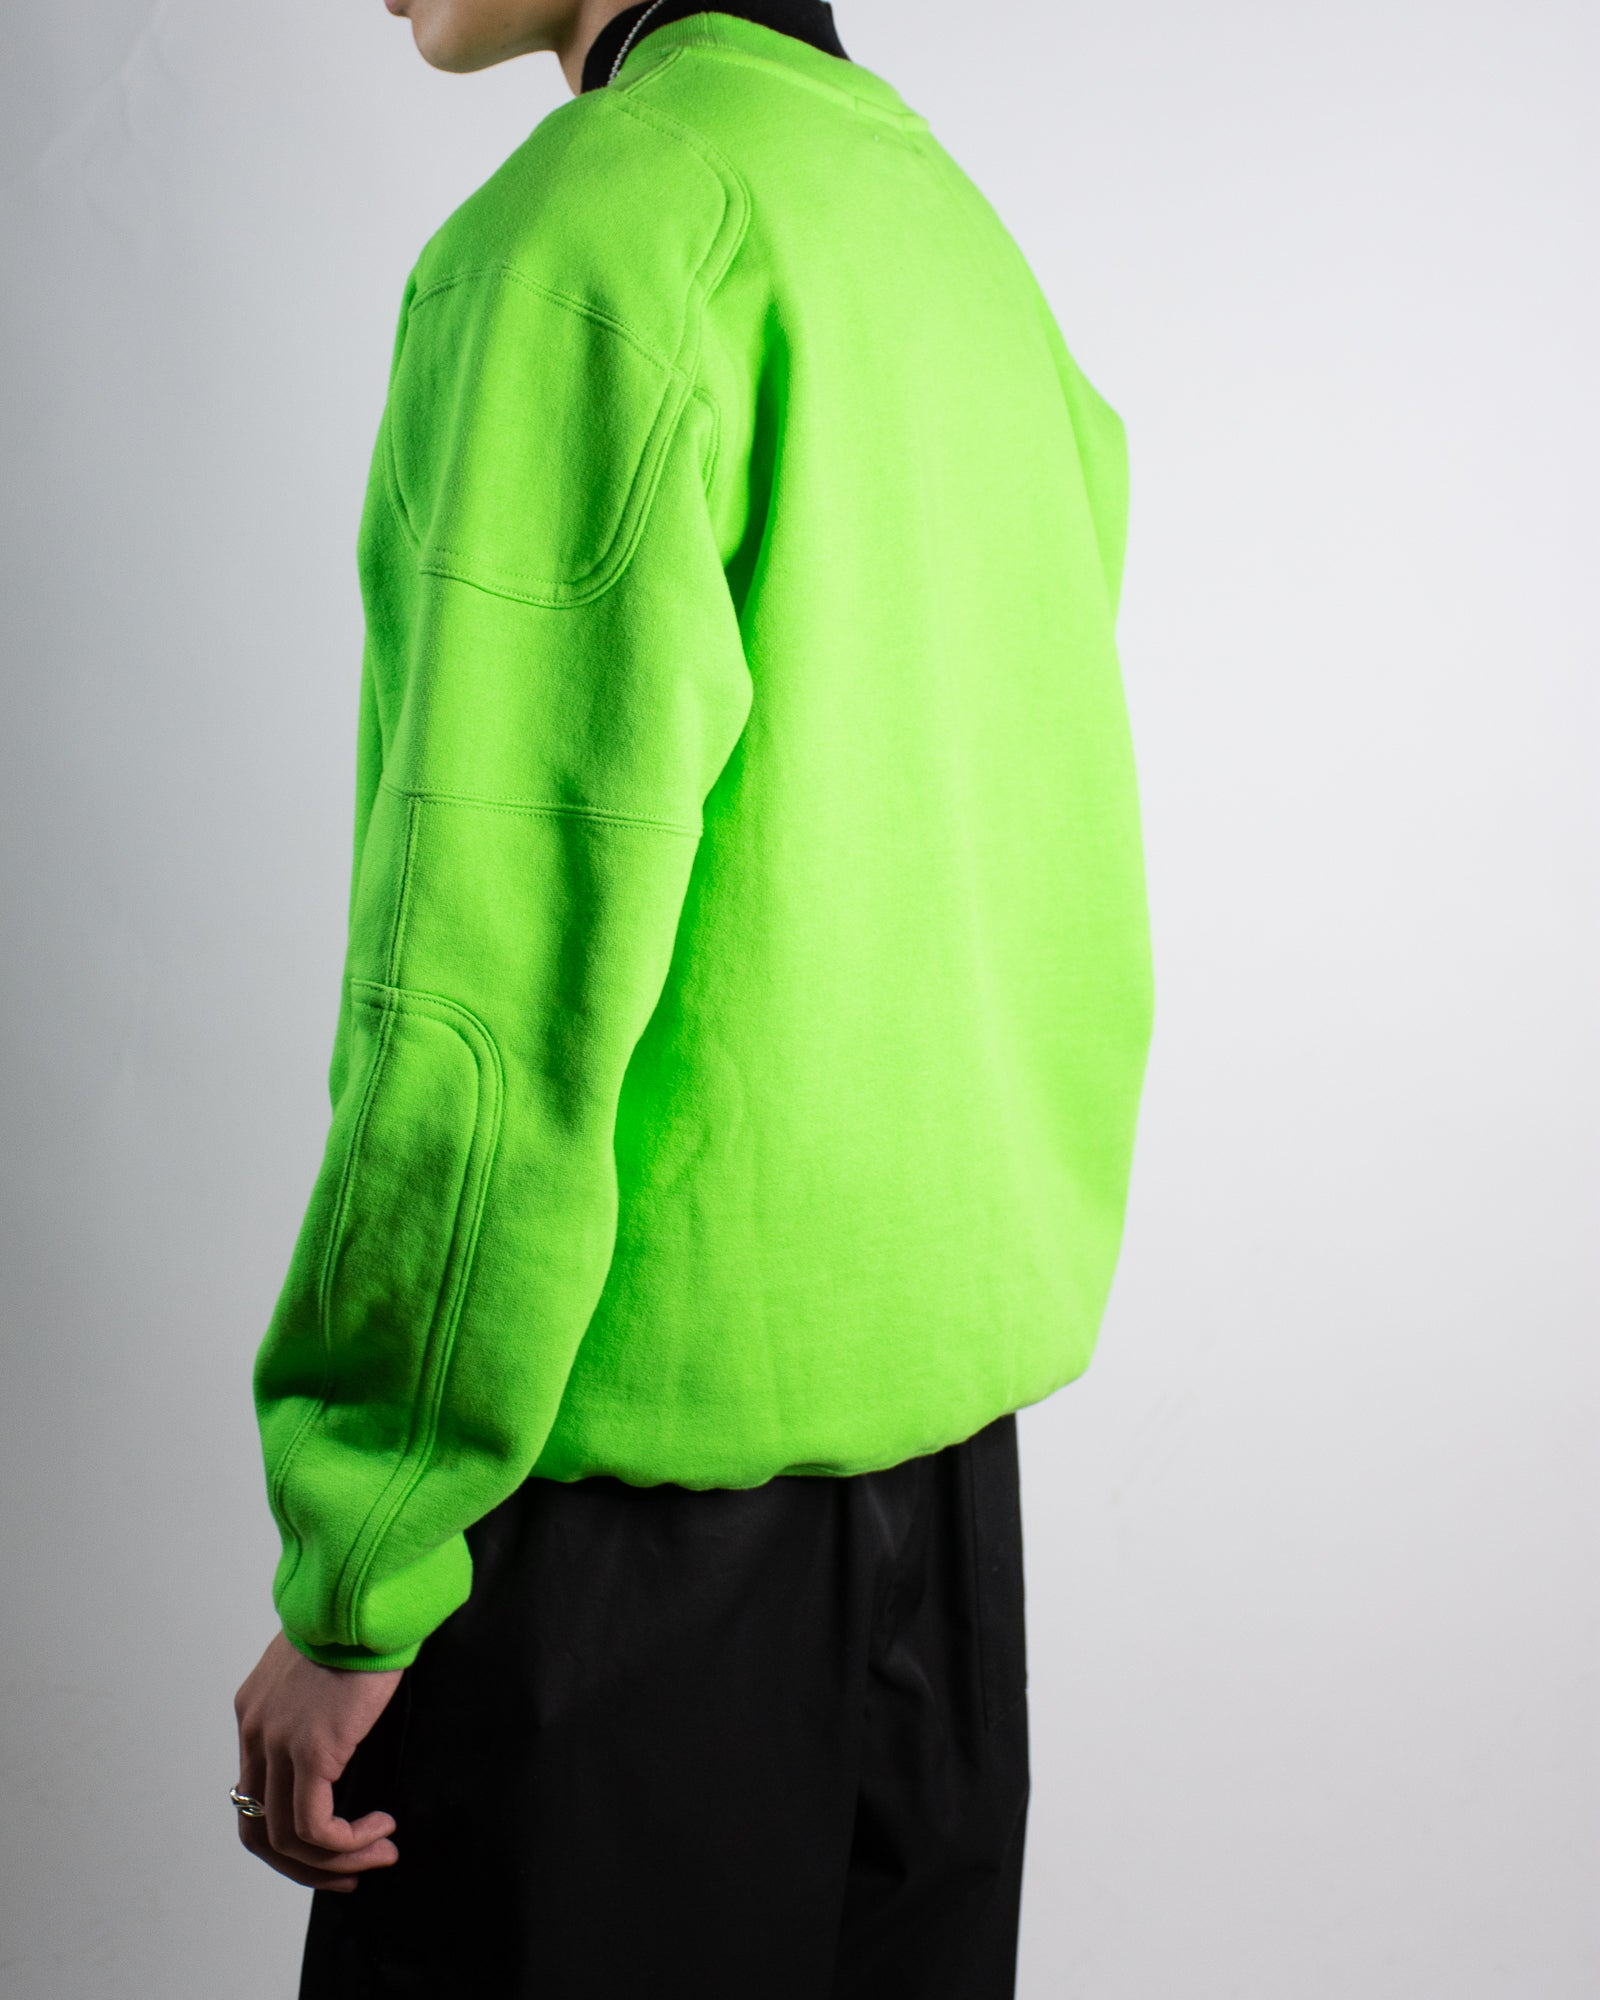 AMBUSH Paneled Sweatshirt